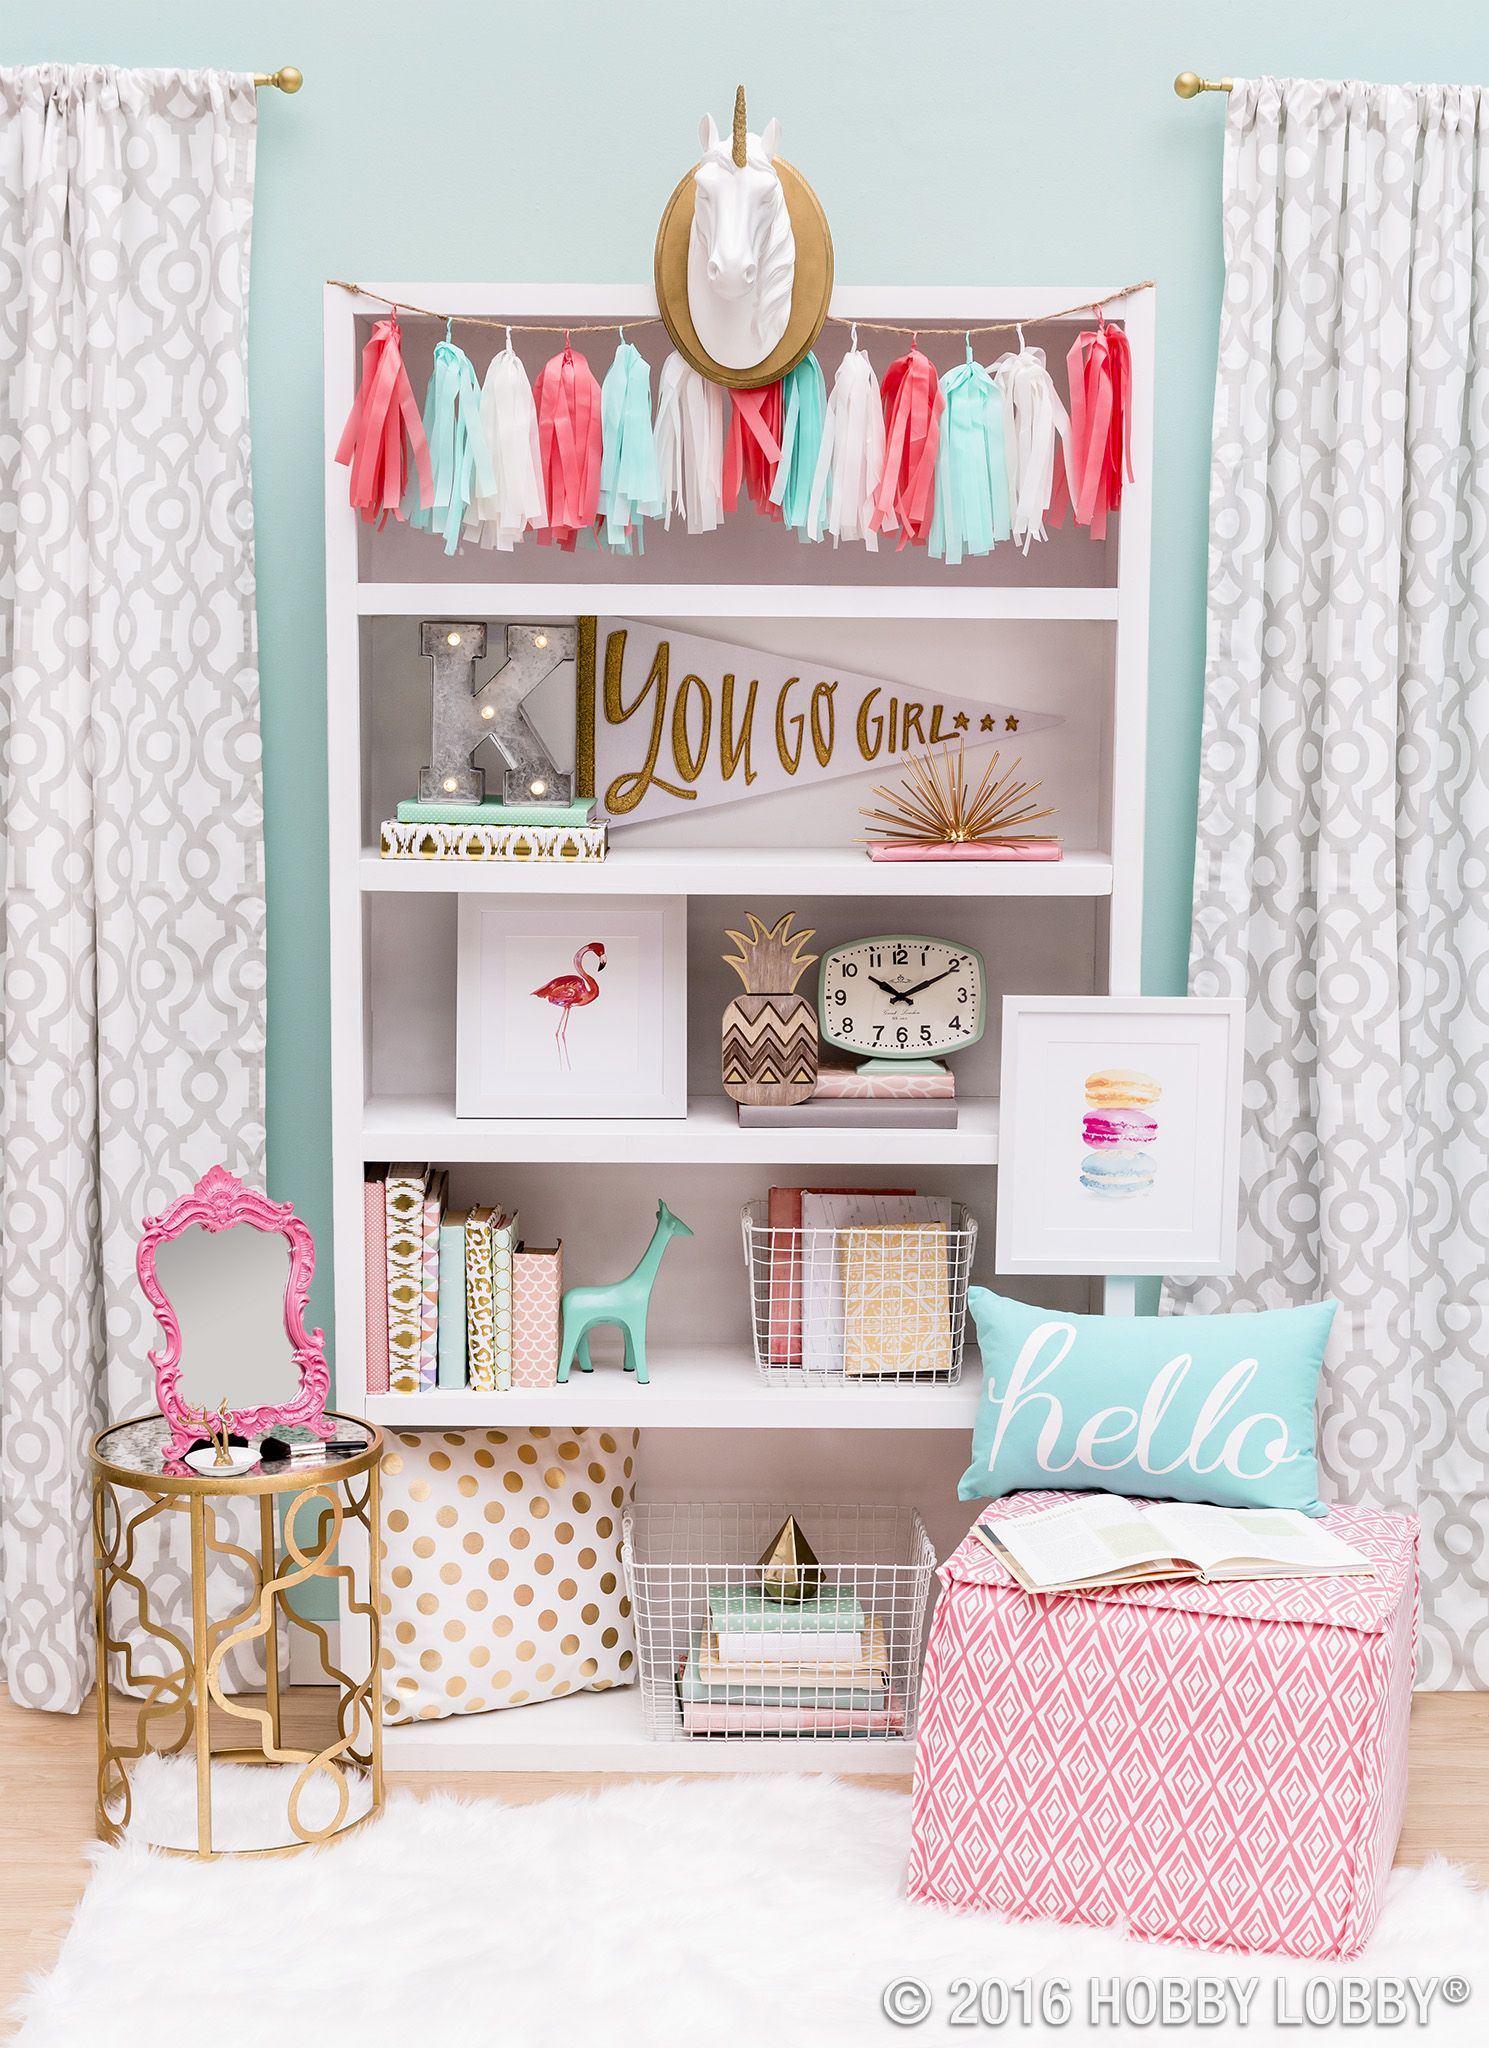 Is Your Little Darling S Decor Ready For An Update Spruce Up Her E With Trendy Accents That Reflect Flourishing Personality